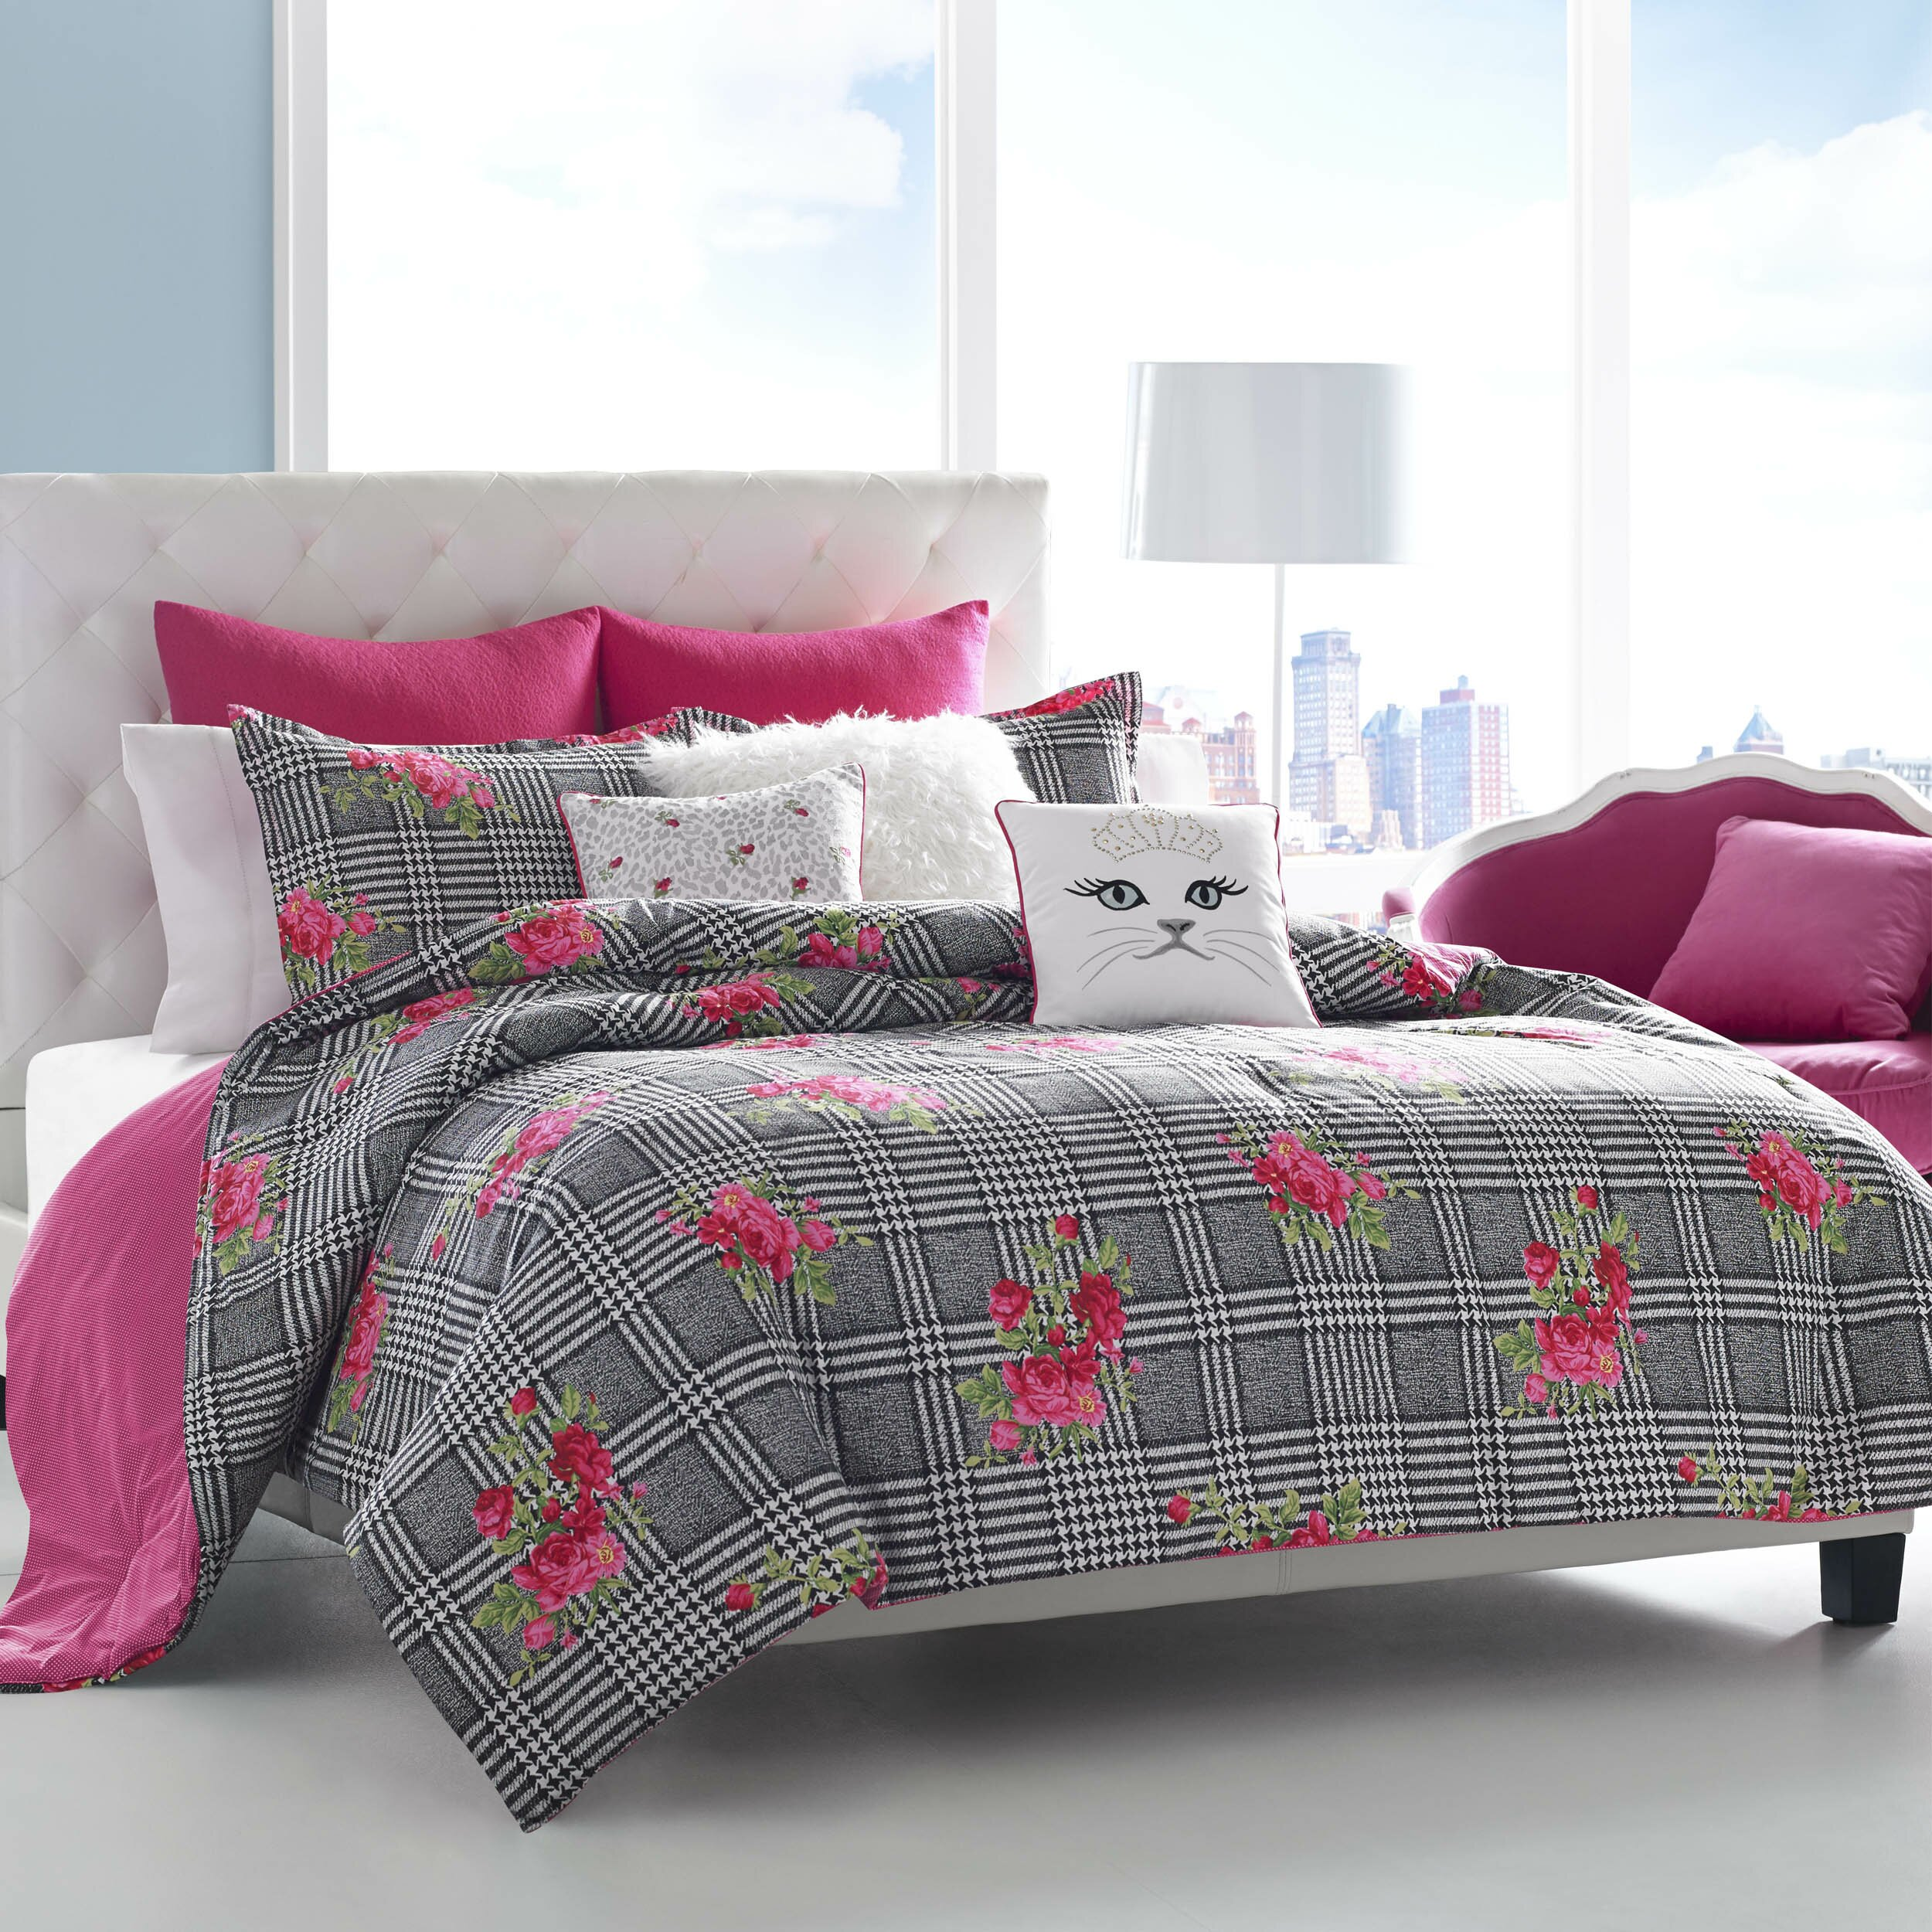 Betsey Johnson Polished Punk Comforter Set Reviews Wayfair